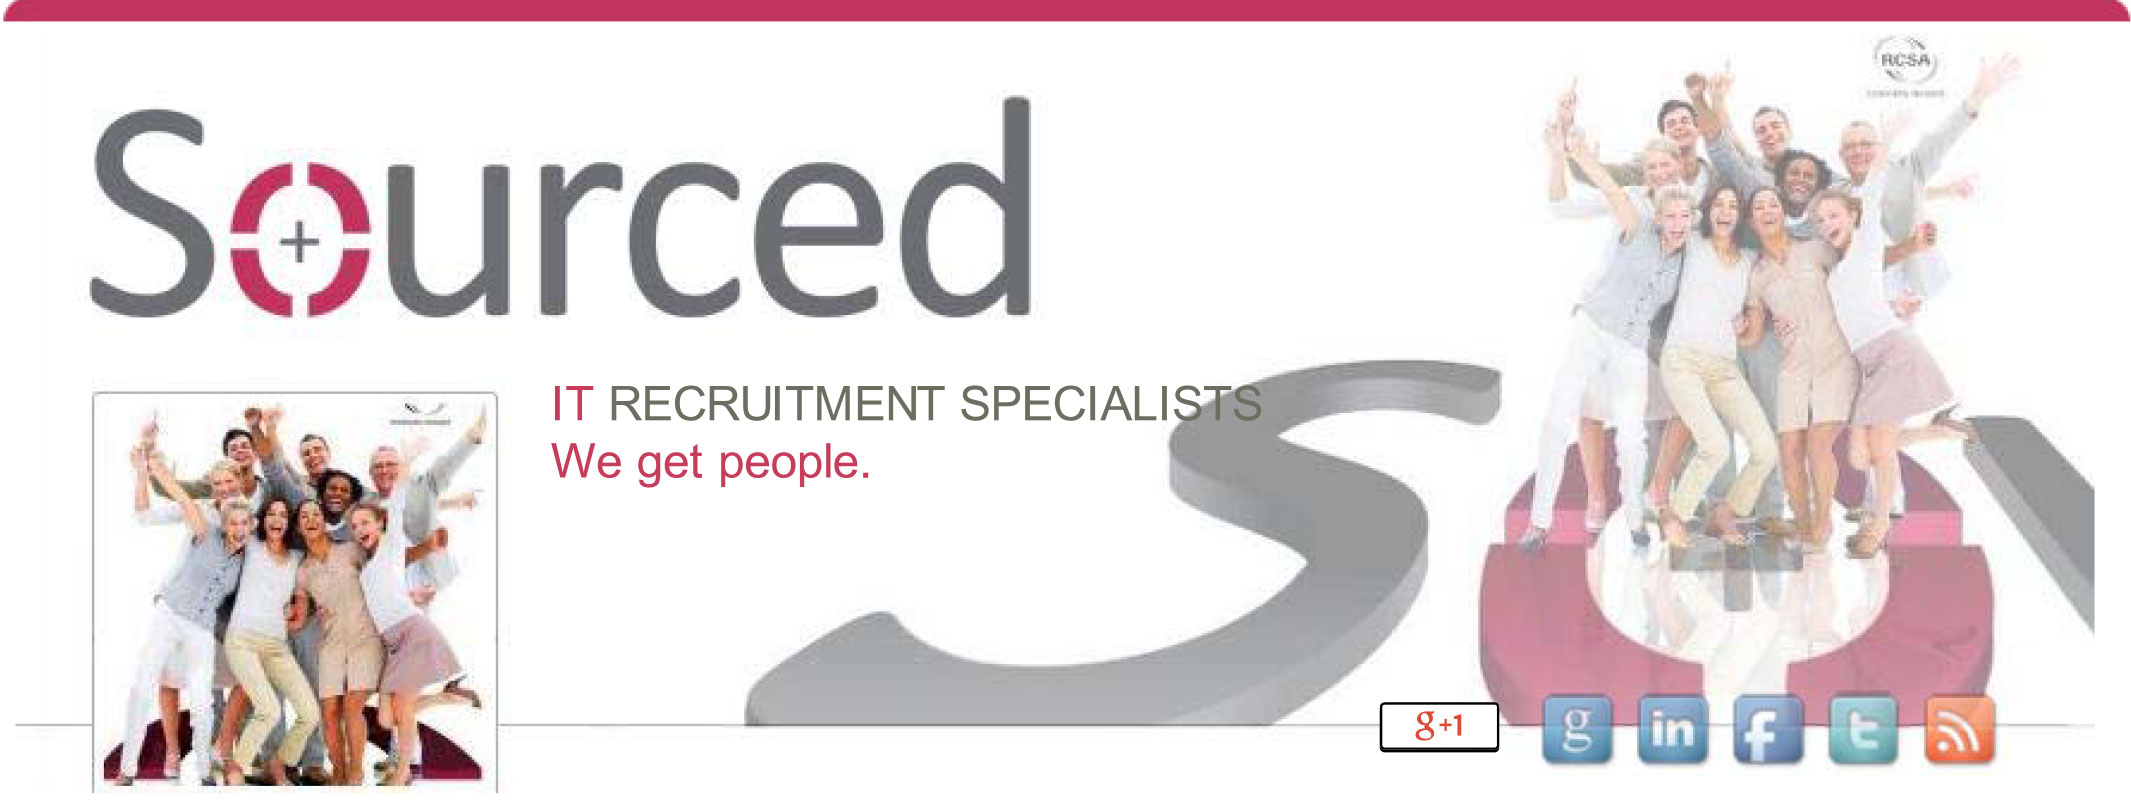 Sourced IT recruitment specialists